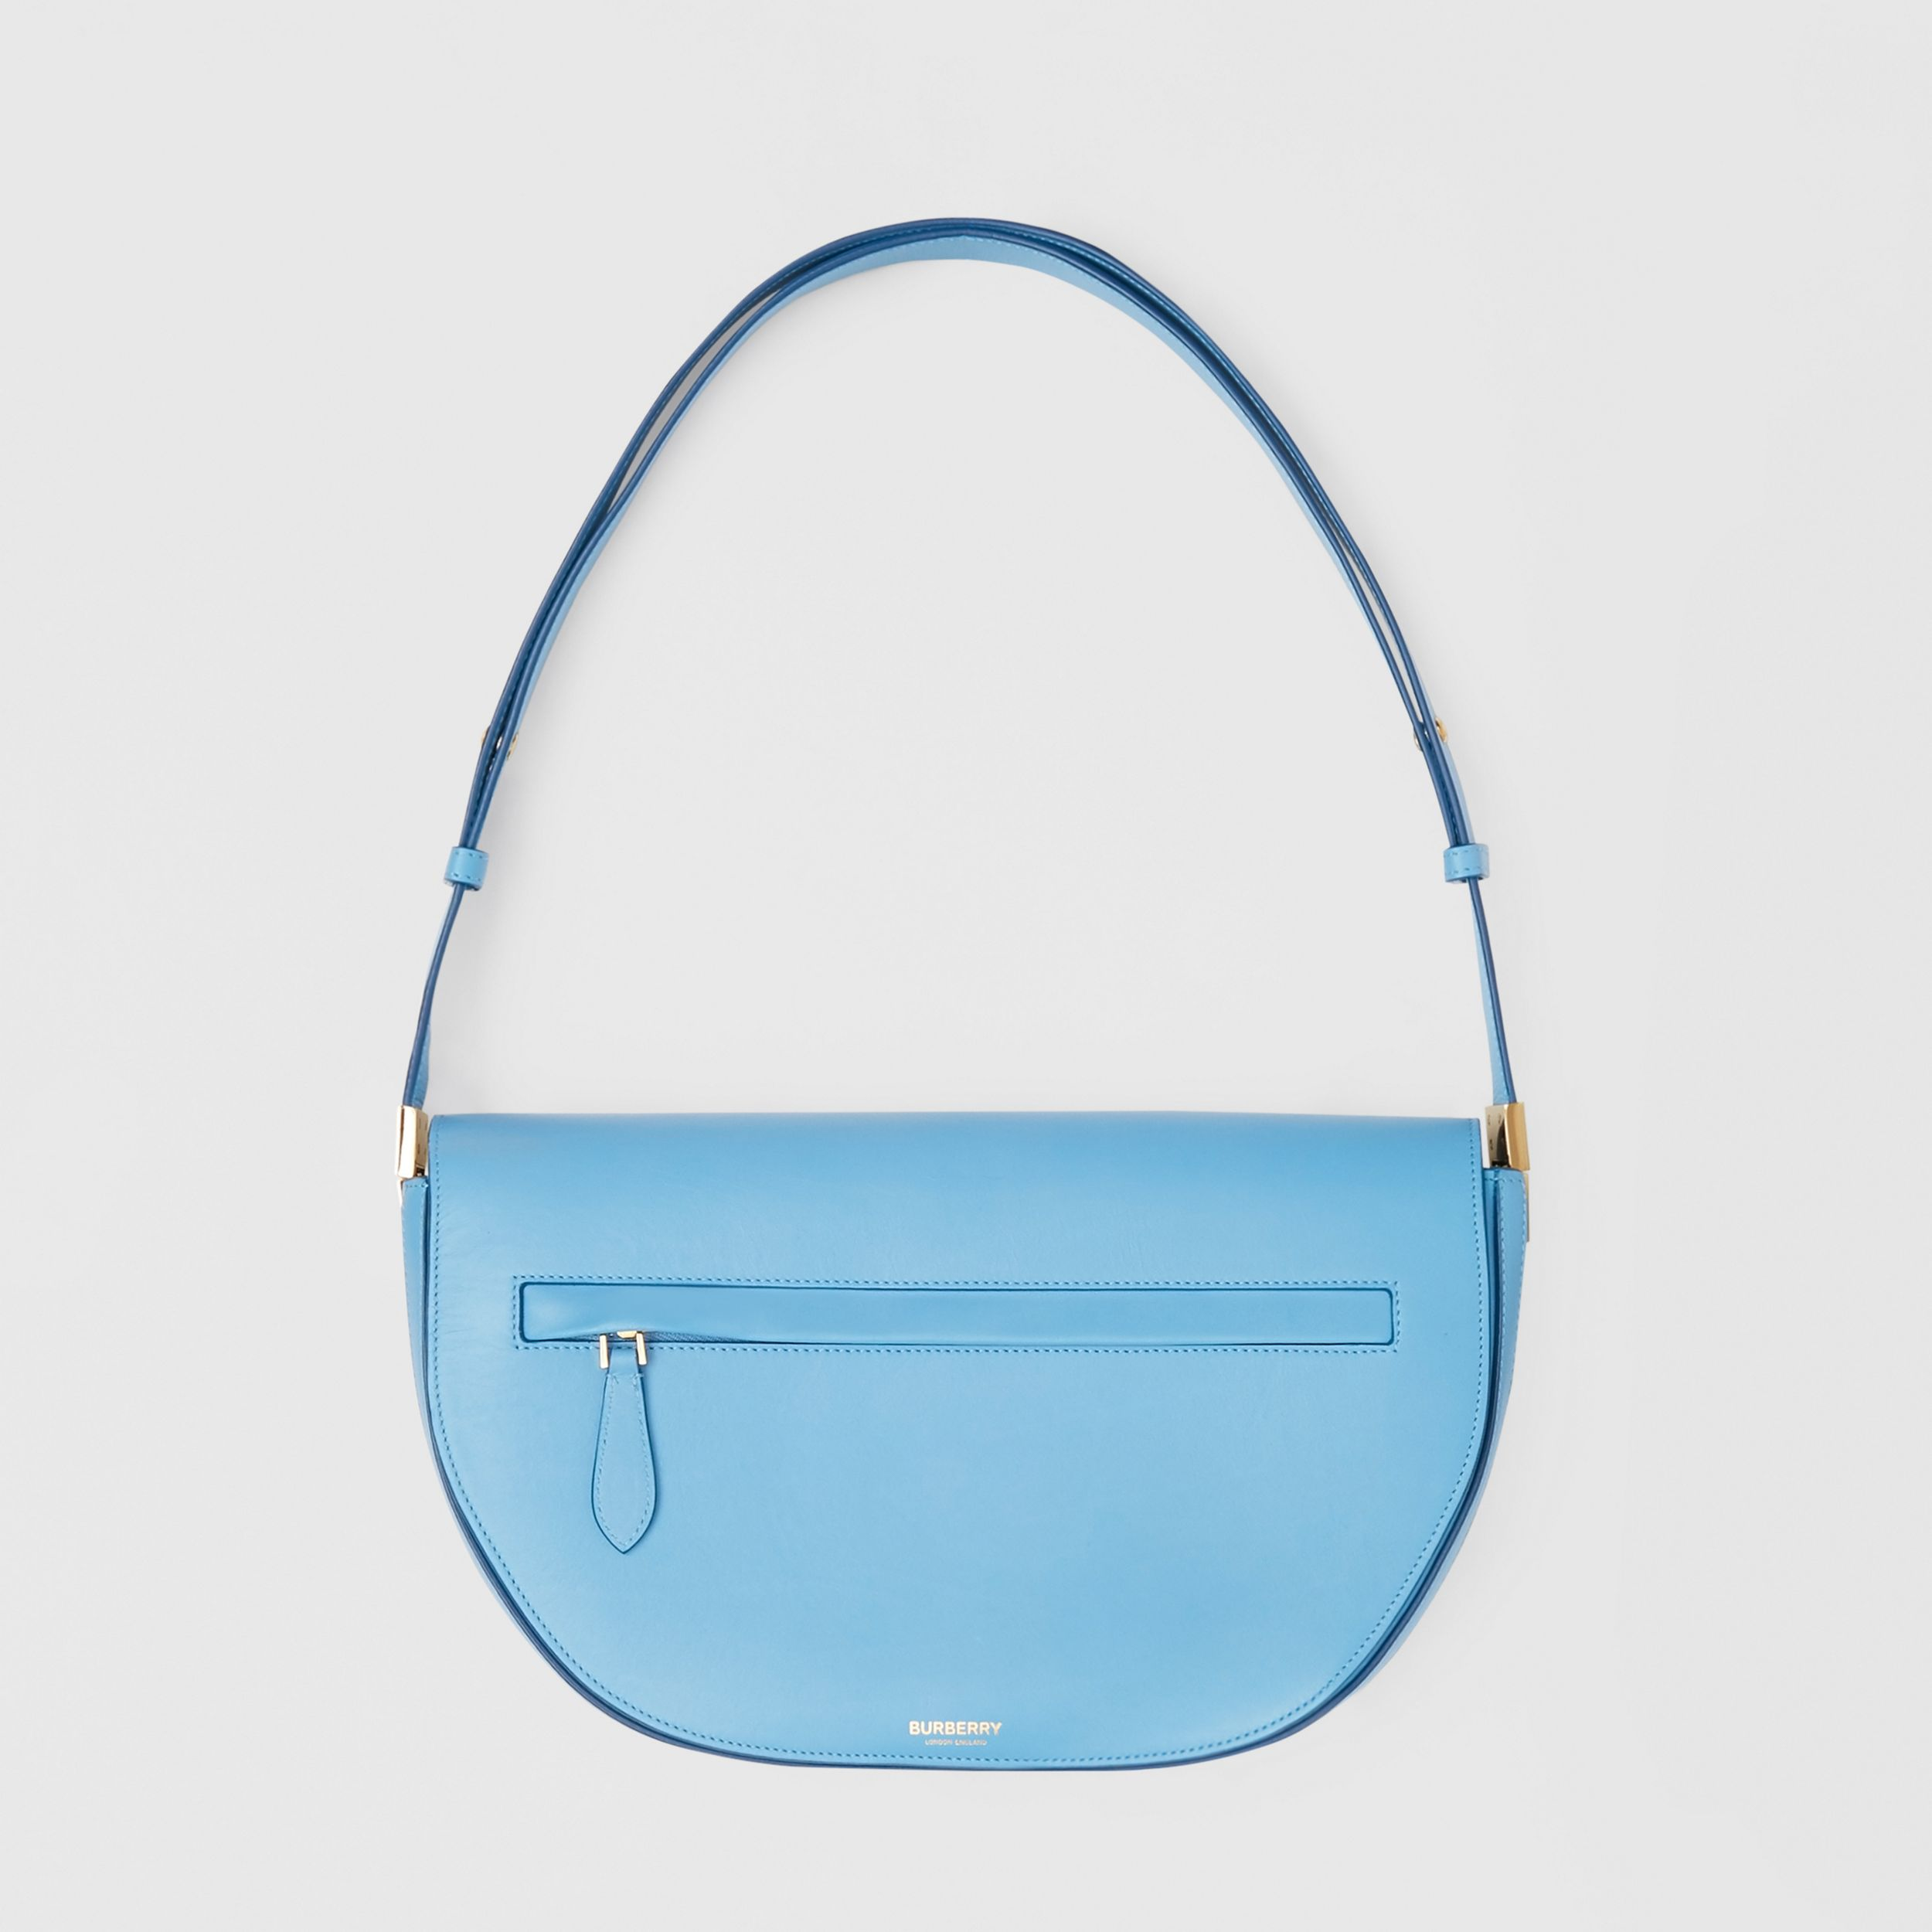 Medium Leather Olympia Bag in Blue Topaz | Burberry - 1